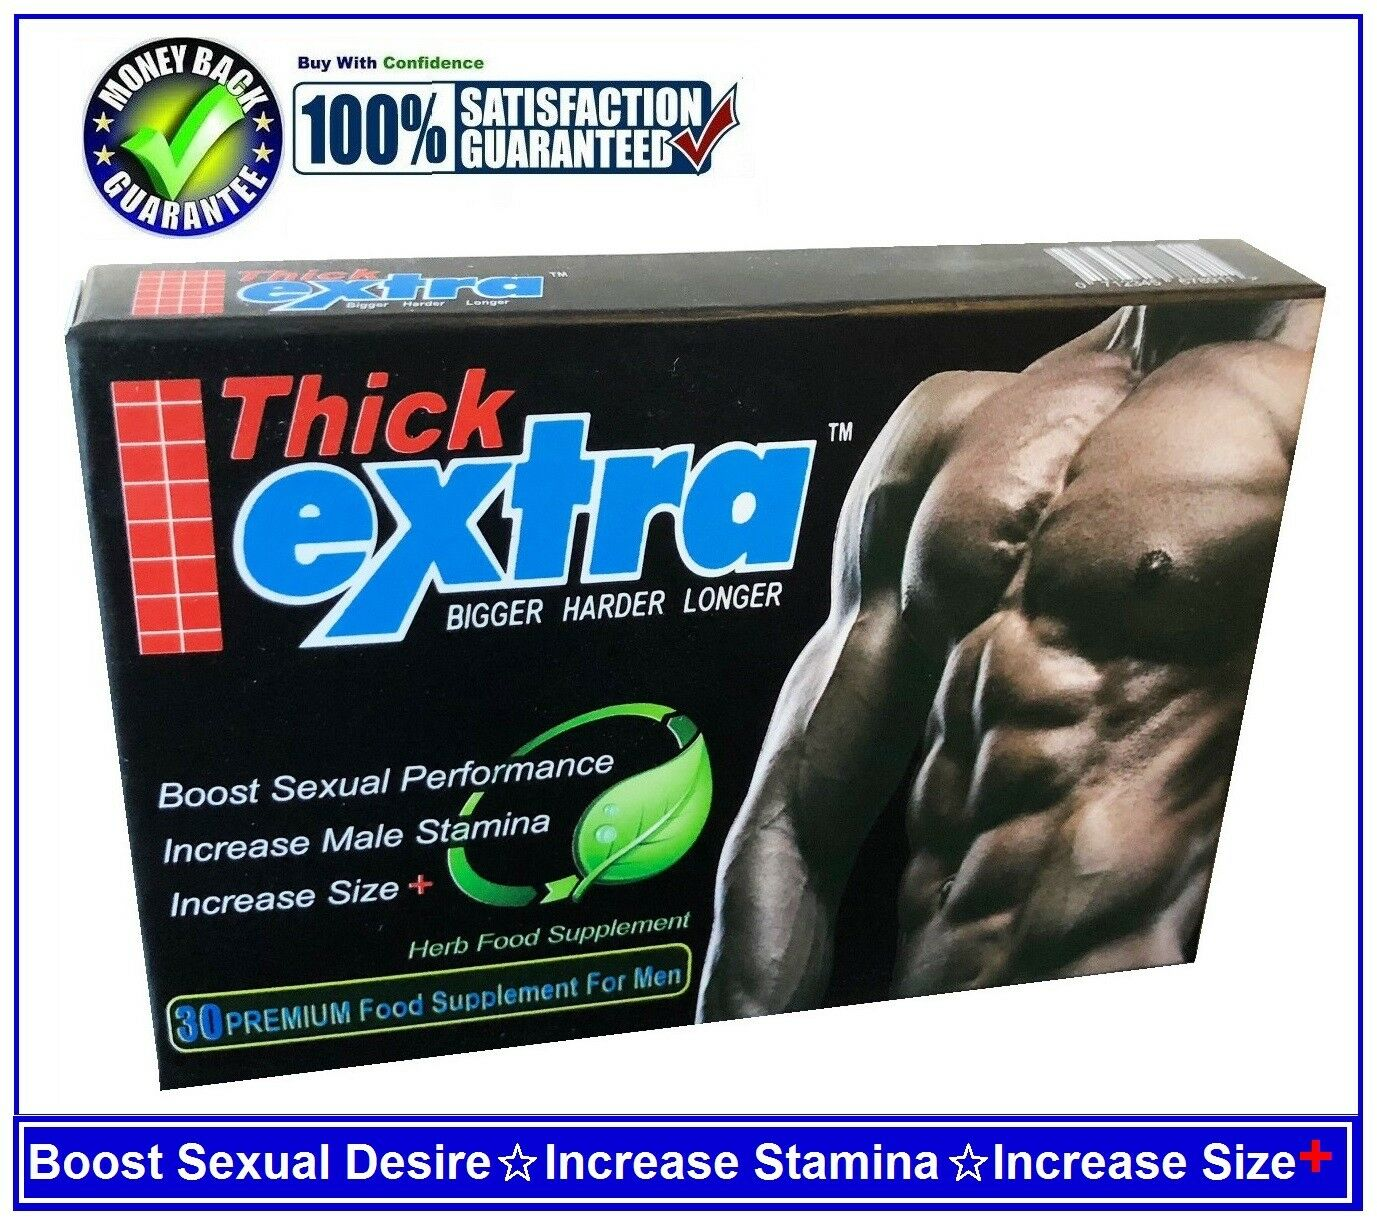 EXTRA THICK-PENIS ENLARGEMENT PILLS,BIGGER, LONGER & THICKER PENIS-30 CAPSULES